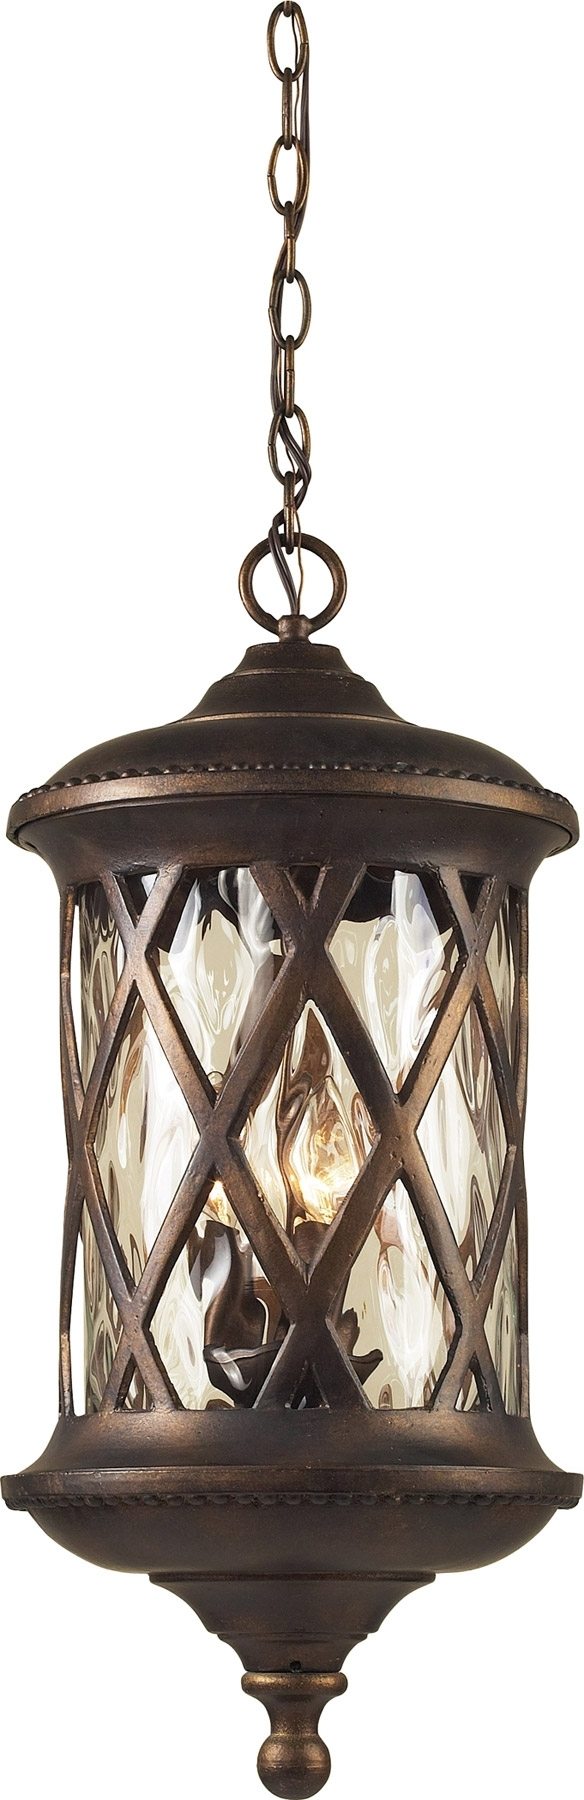 Best And Newest Lighting 42033/3 Barrington Gate Exterior Hanging Pendant Inside Traditional Outdoor Hanging Lights (View 12 of 20)